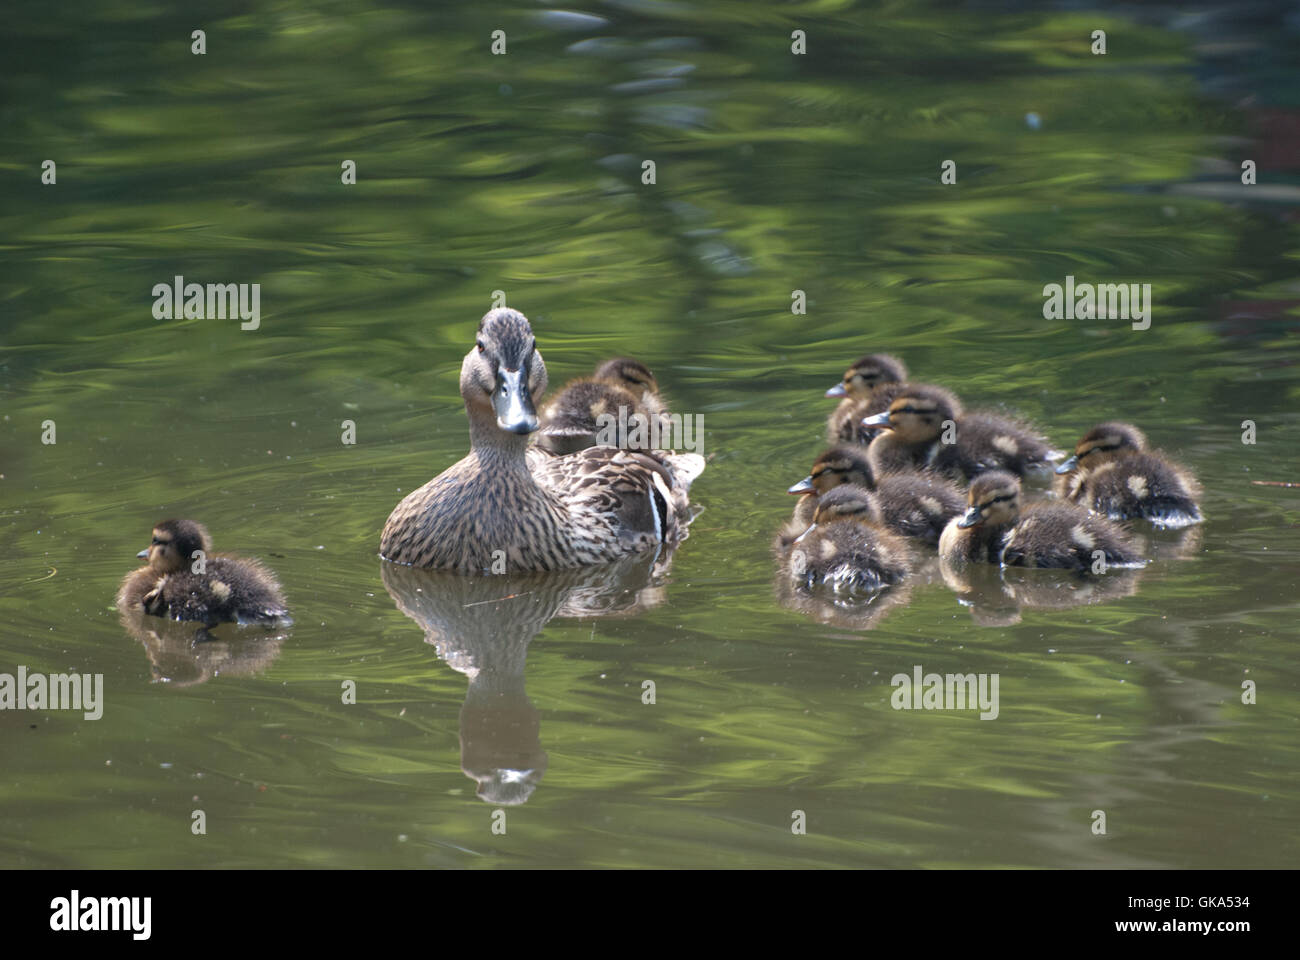 Ducks on Lymm Canal, Cheshire - Stock Image